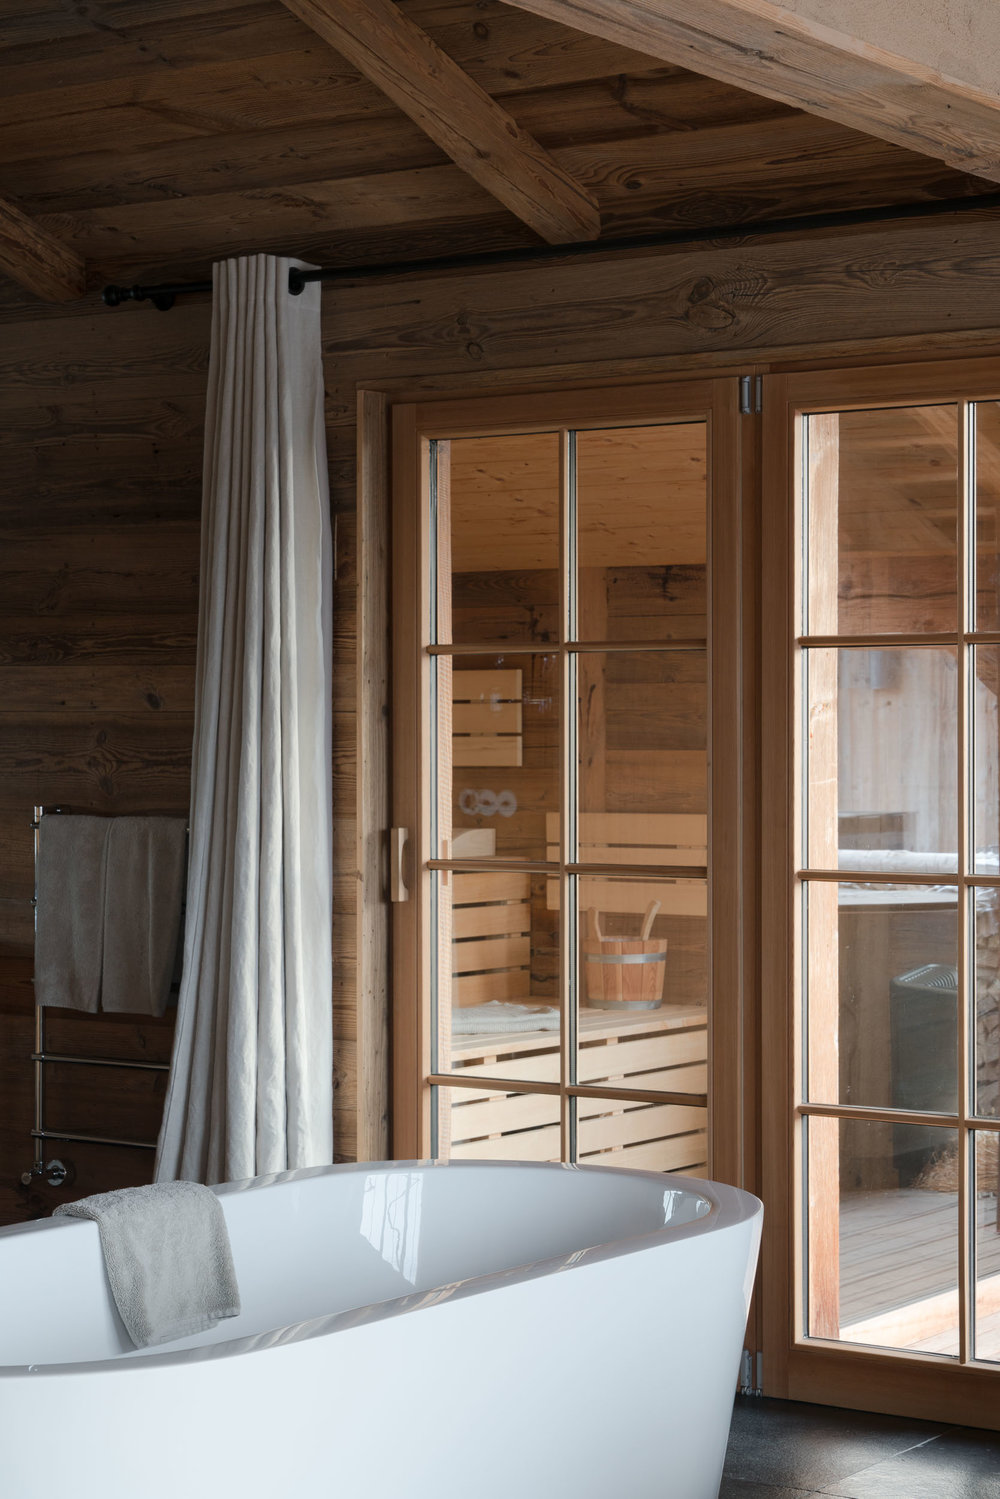 the_getaway_edit_italy_south_tyrol_san_luis_retreat_hotel_and_lodges-2.jpg